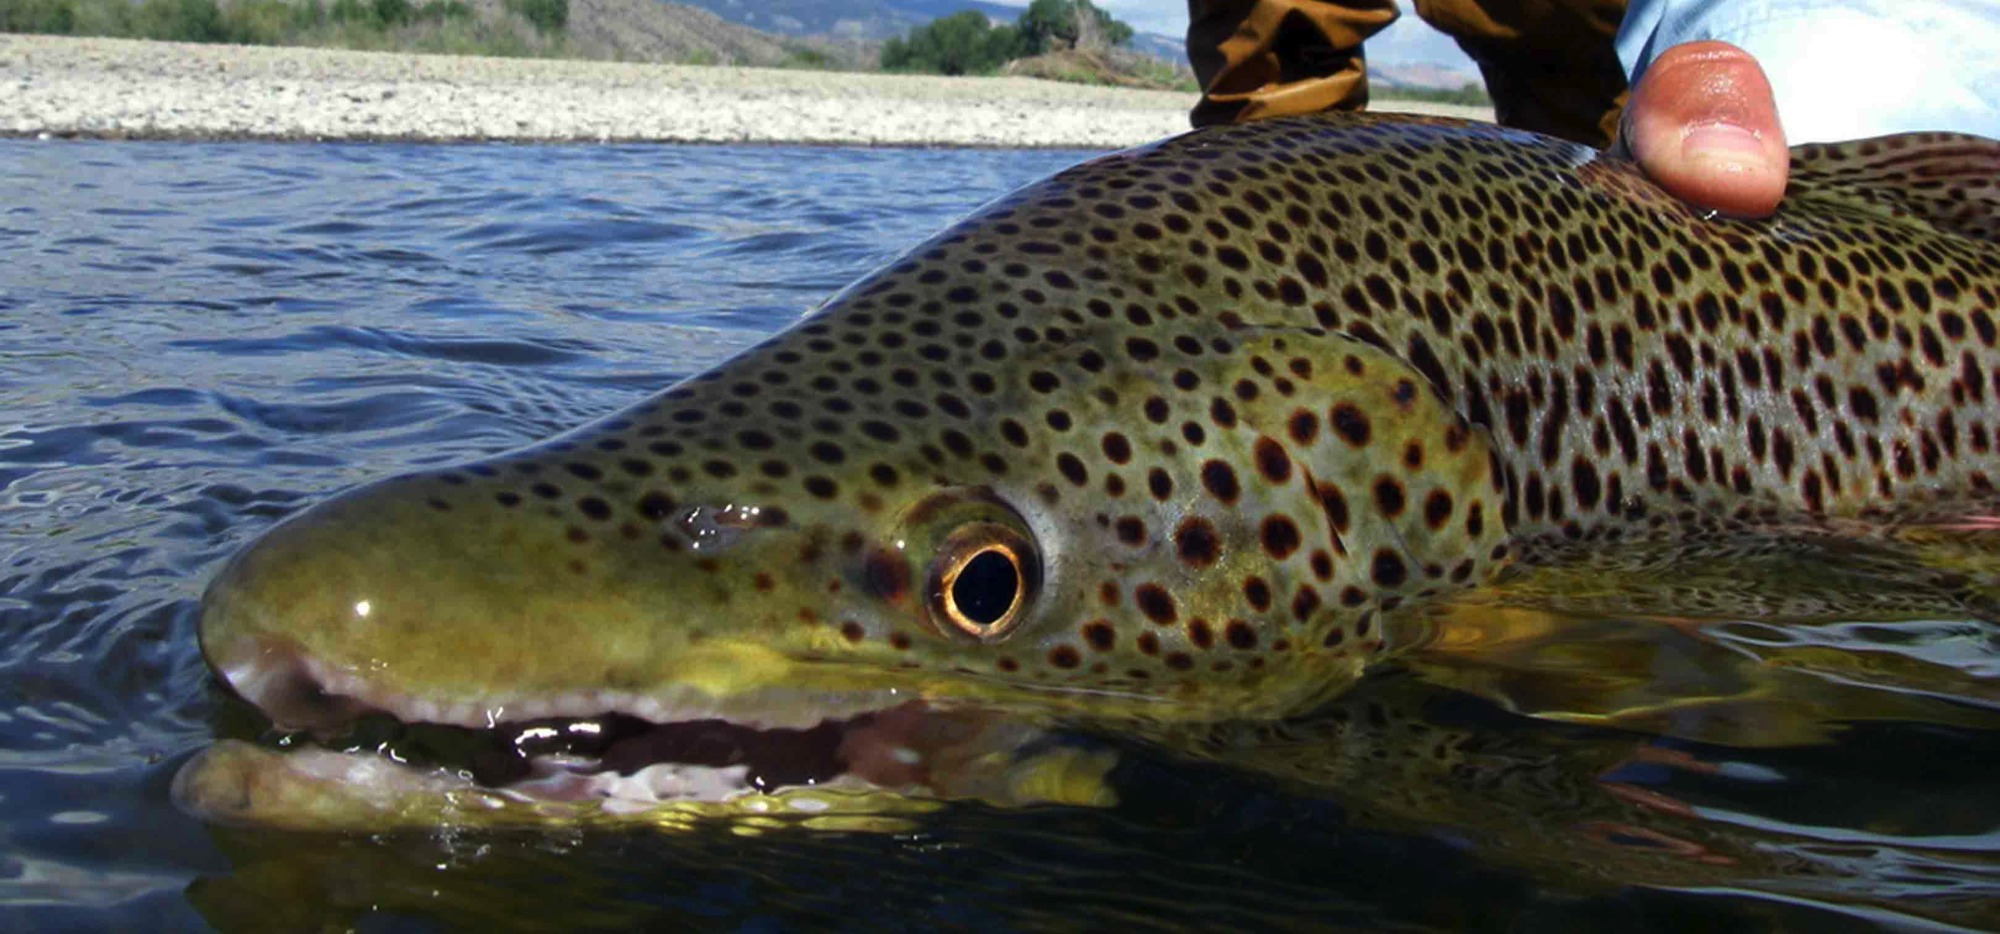 Fly fishing trips for beginners experts 406 763 4465 for Bozeman mt fly fishing